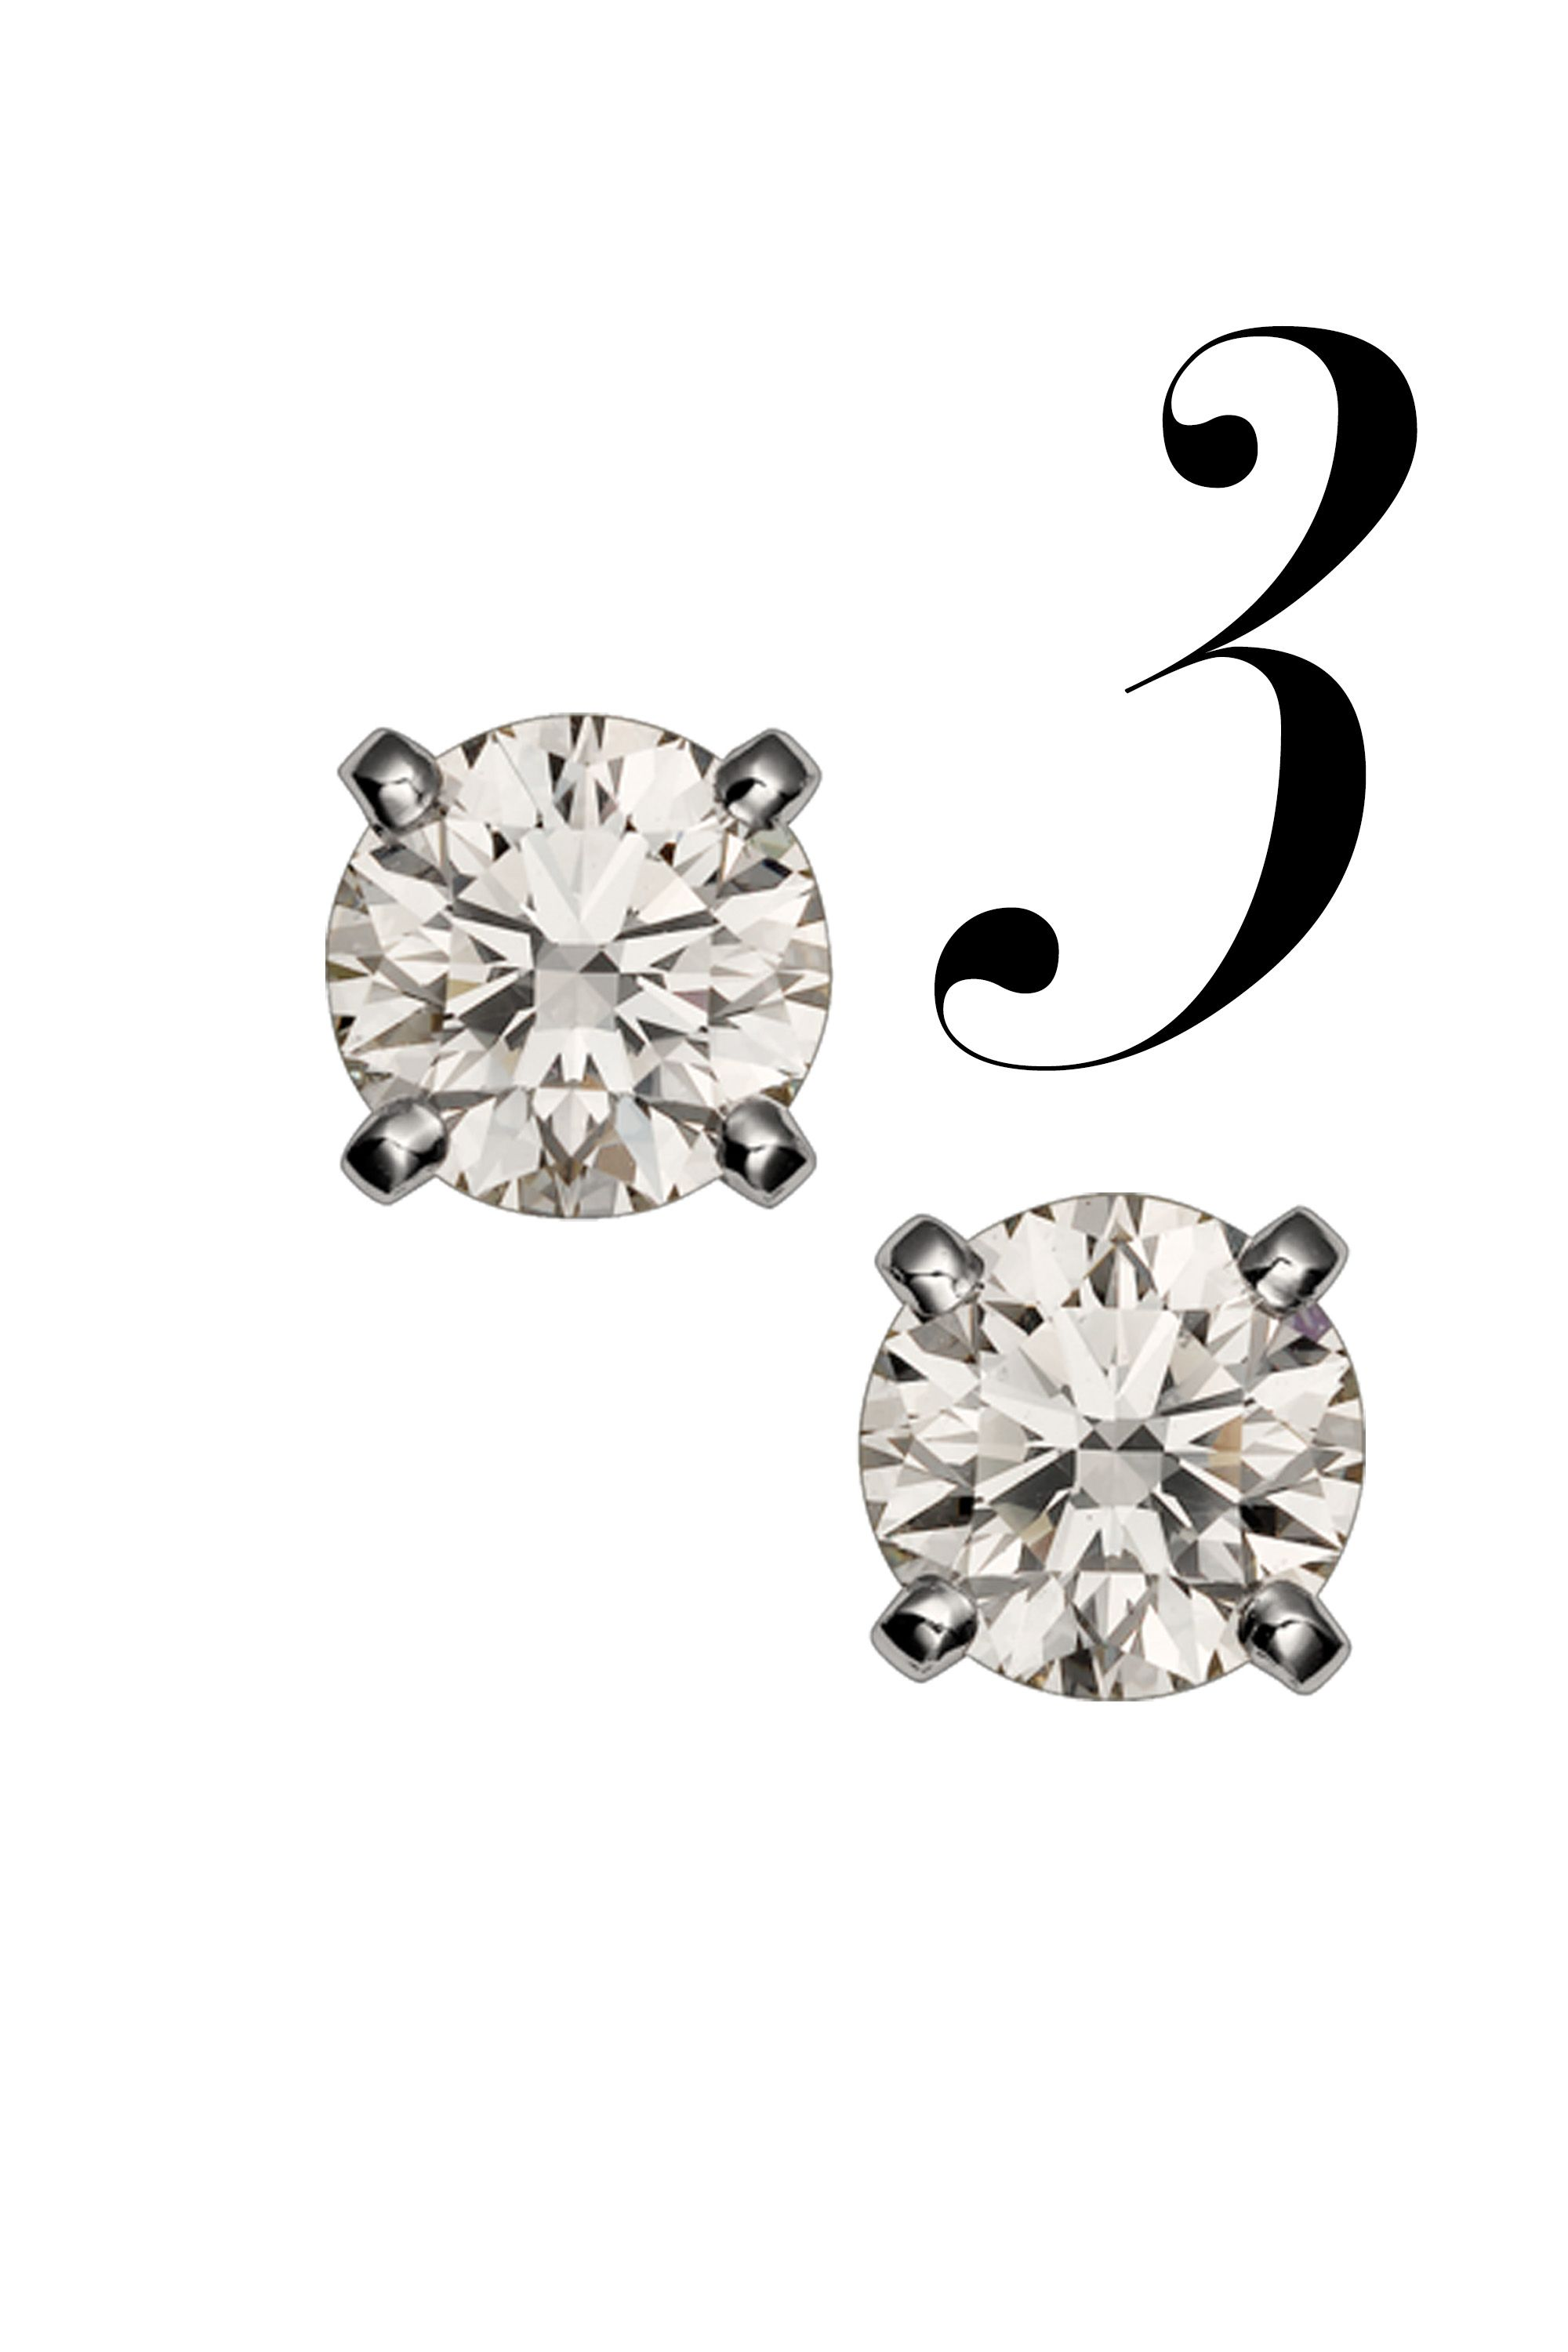 """Adorned in this striking pair of brilliant-cut solitaires, her future's a bright and beautiful one. (But you already knew that.)<em></em><em>Cartier 1895 Earrings, price upon request, 1-800-227-8437, <a href=""""http://bs.serving-sys.com/BurstingPipe/adServer.bs?cn=tf&amp&#x3B;c=20&amp&#x3B;mc=click&amp&#x3B;pli=12419161&amp&#x3B;PluID=0&amp&#x3B;ord=%n"""" target=""""_blank"""">cartier.us</a></em>"""